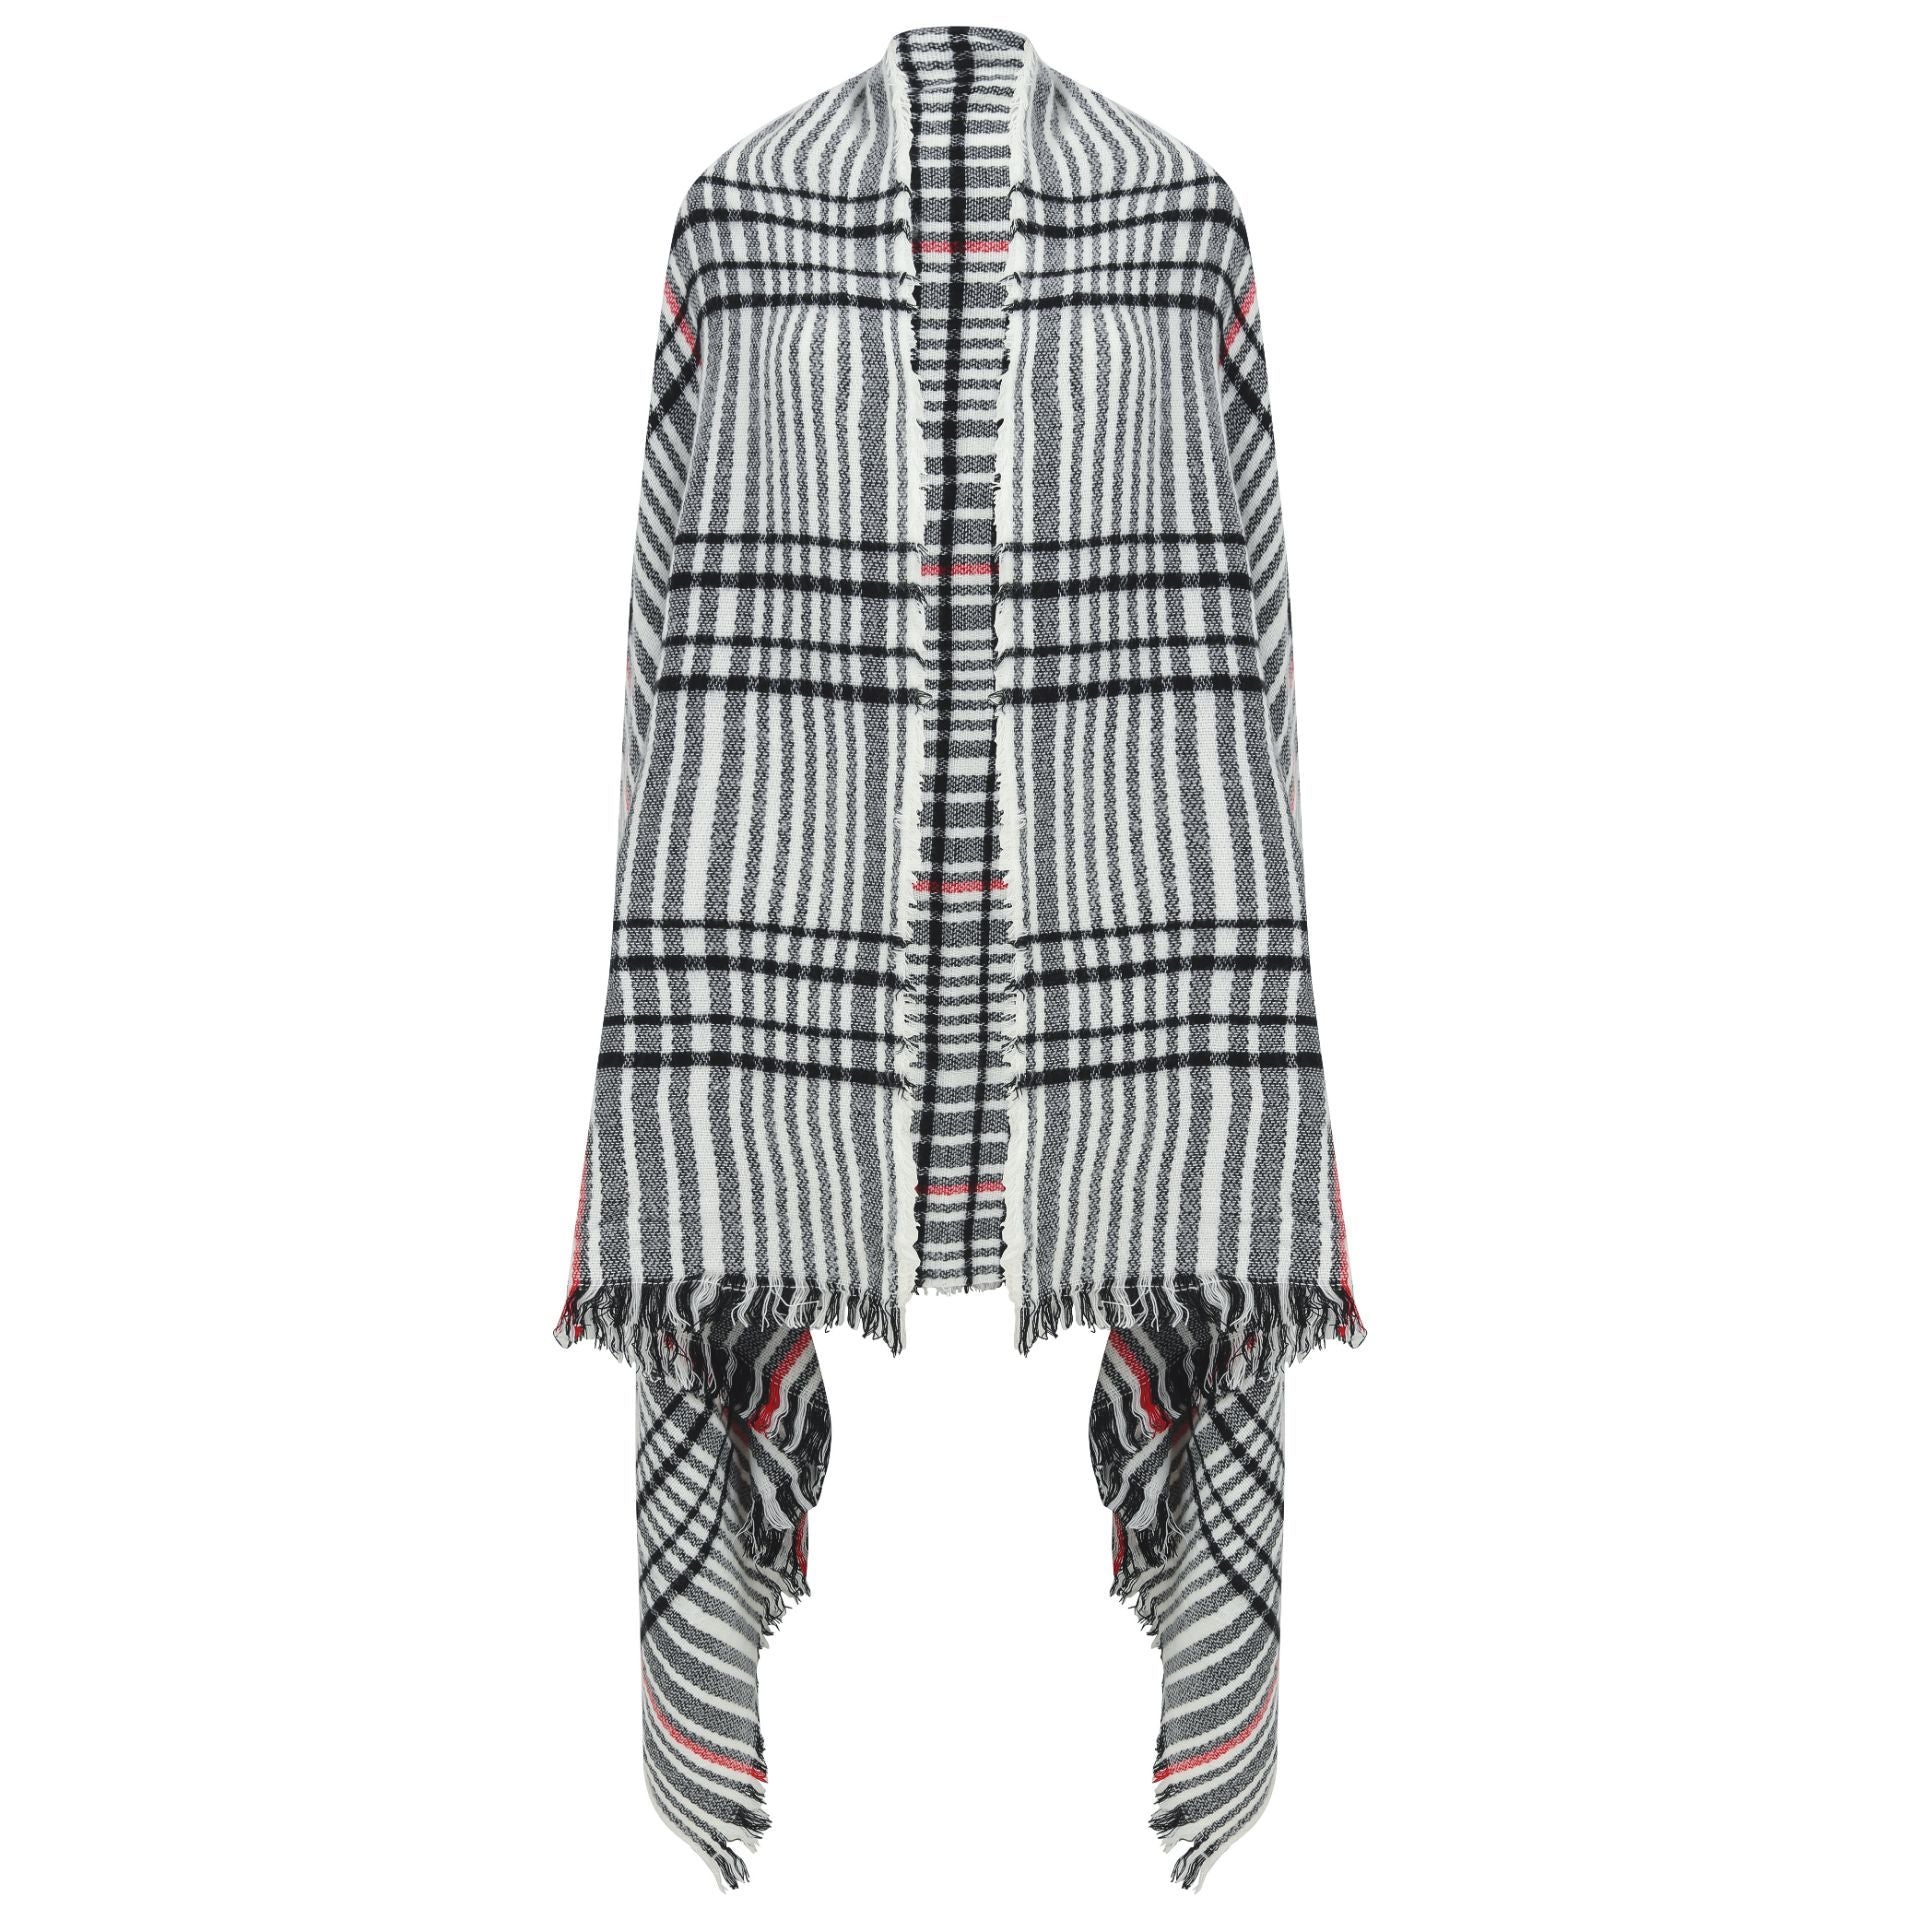 East Village Alabama Scarf - grey with black & red line check